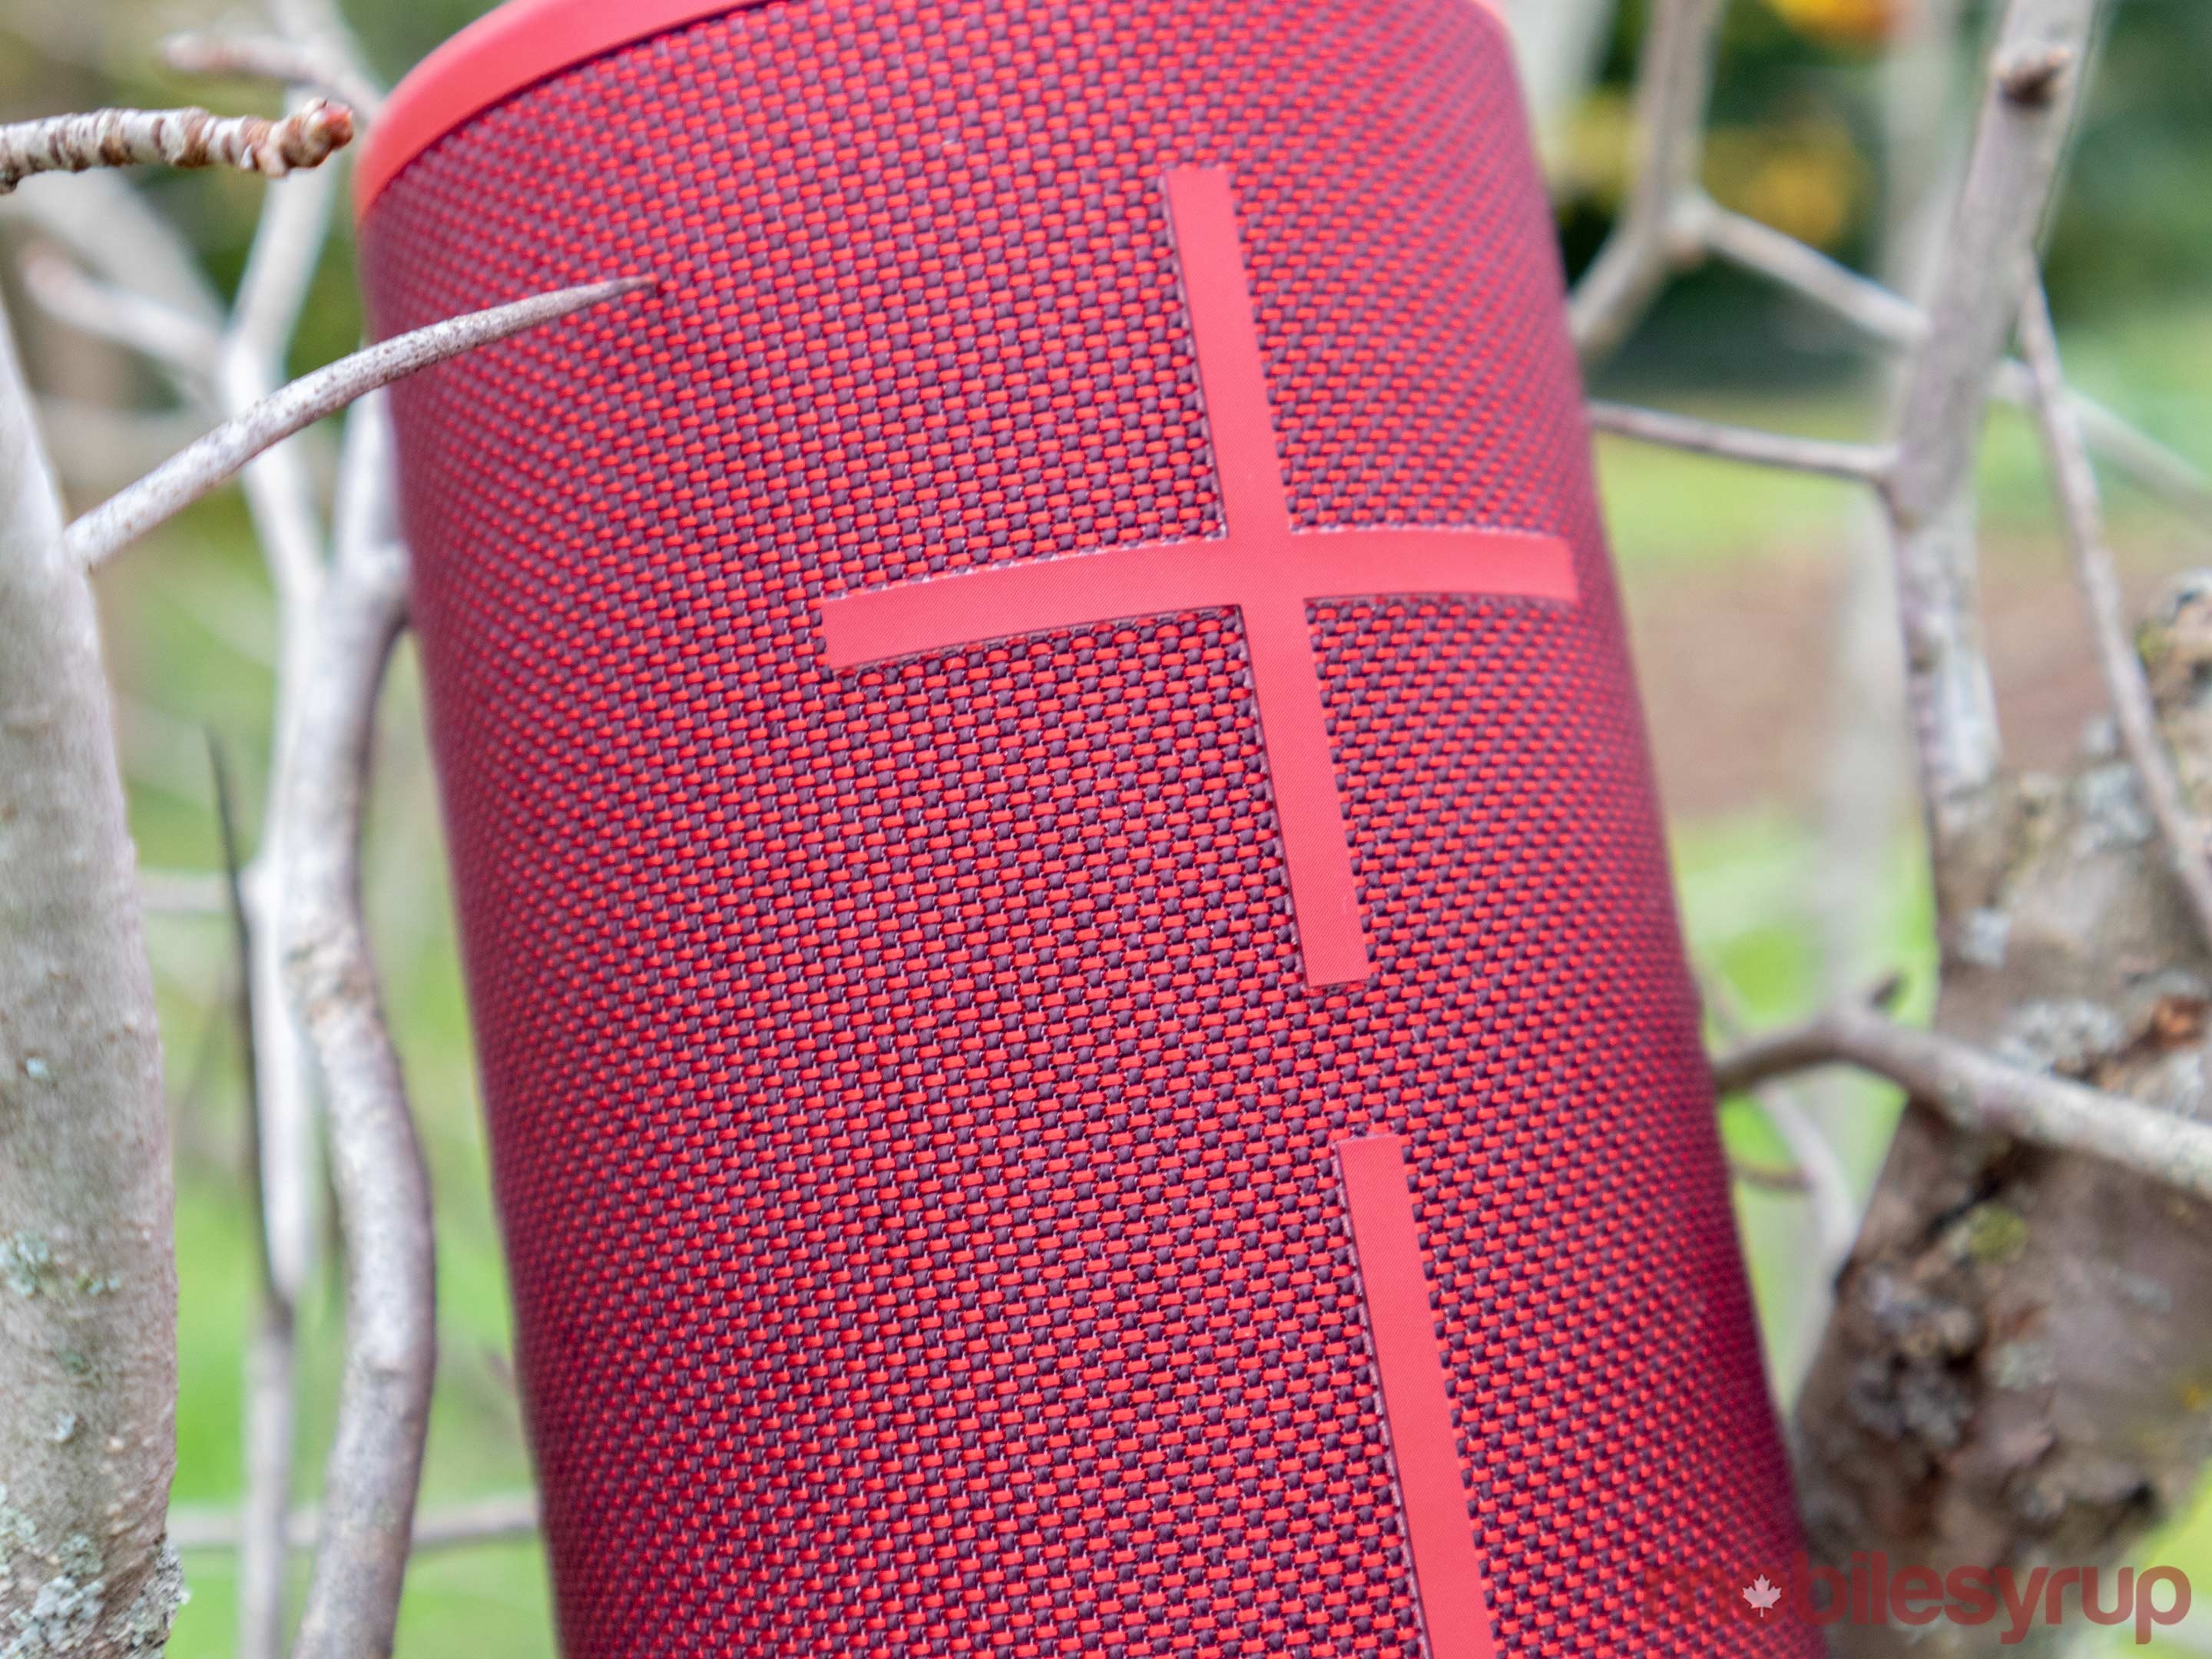 UE Boom 3 Review: A faithful speaker that surprises at every